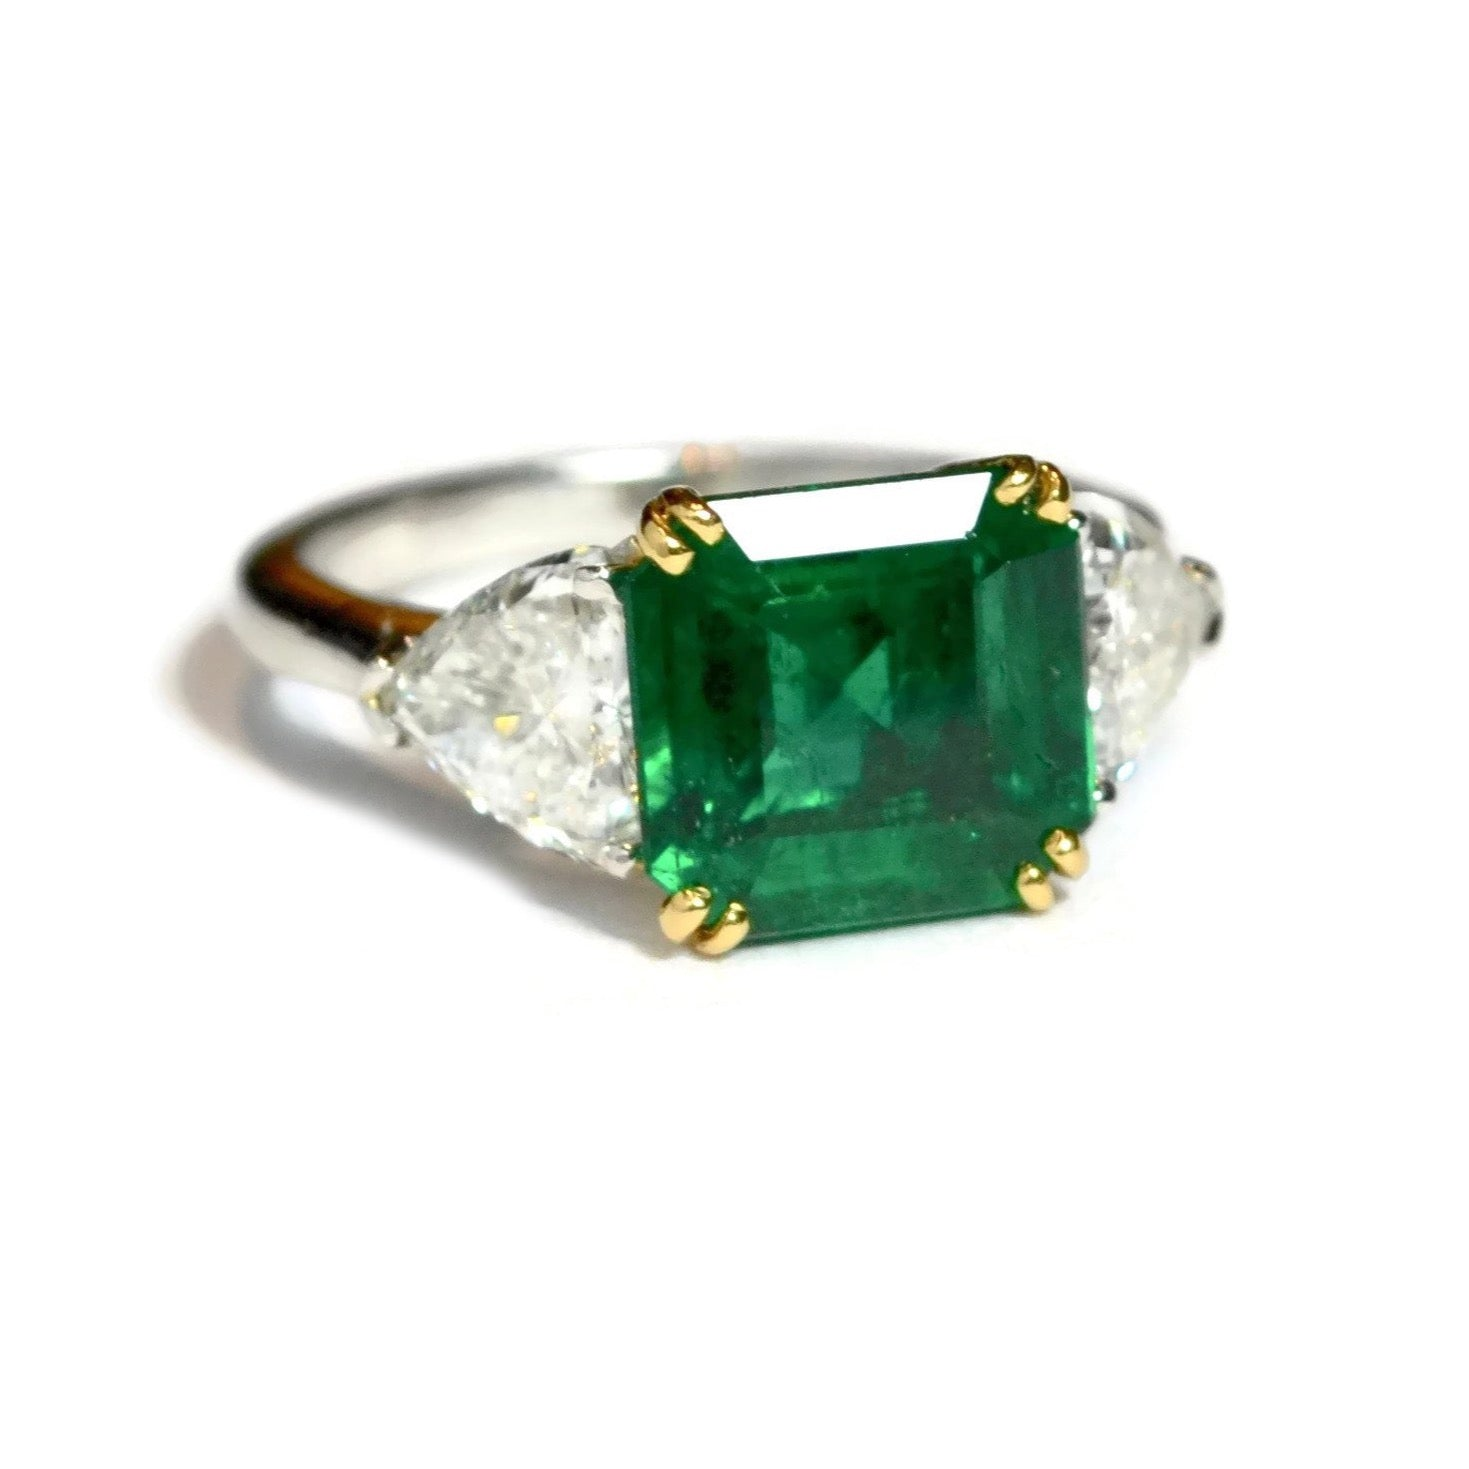 rings a emerald candere yellow jewellers gold ring company shopping india com kalyan online jewellery roman mens